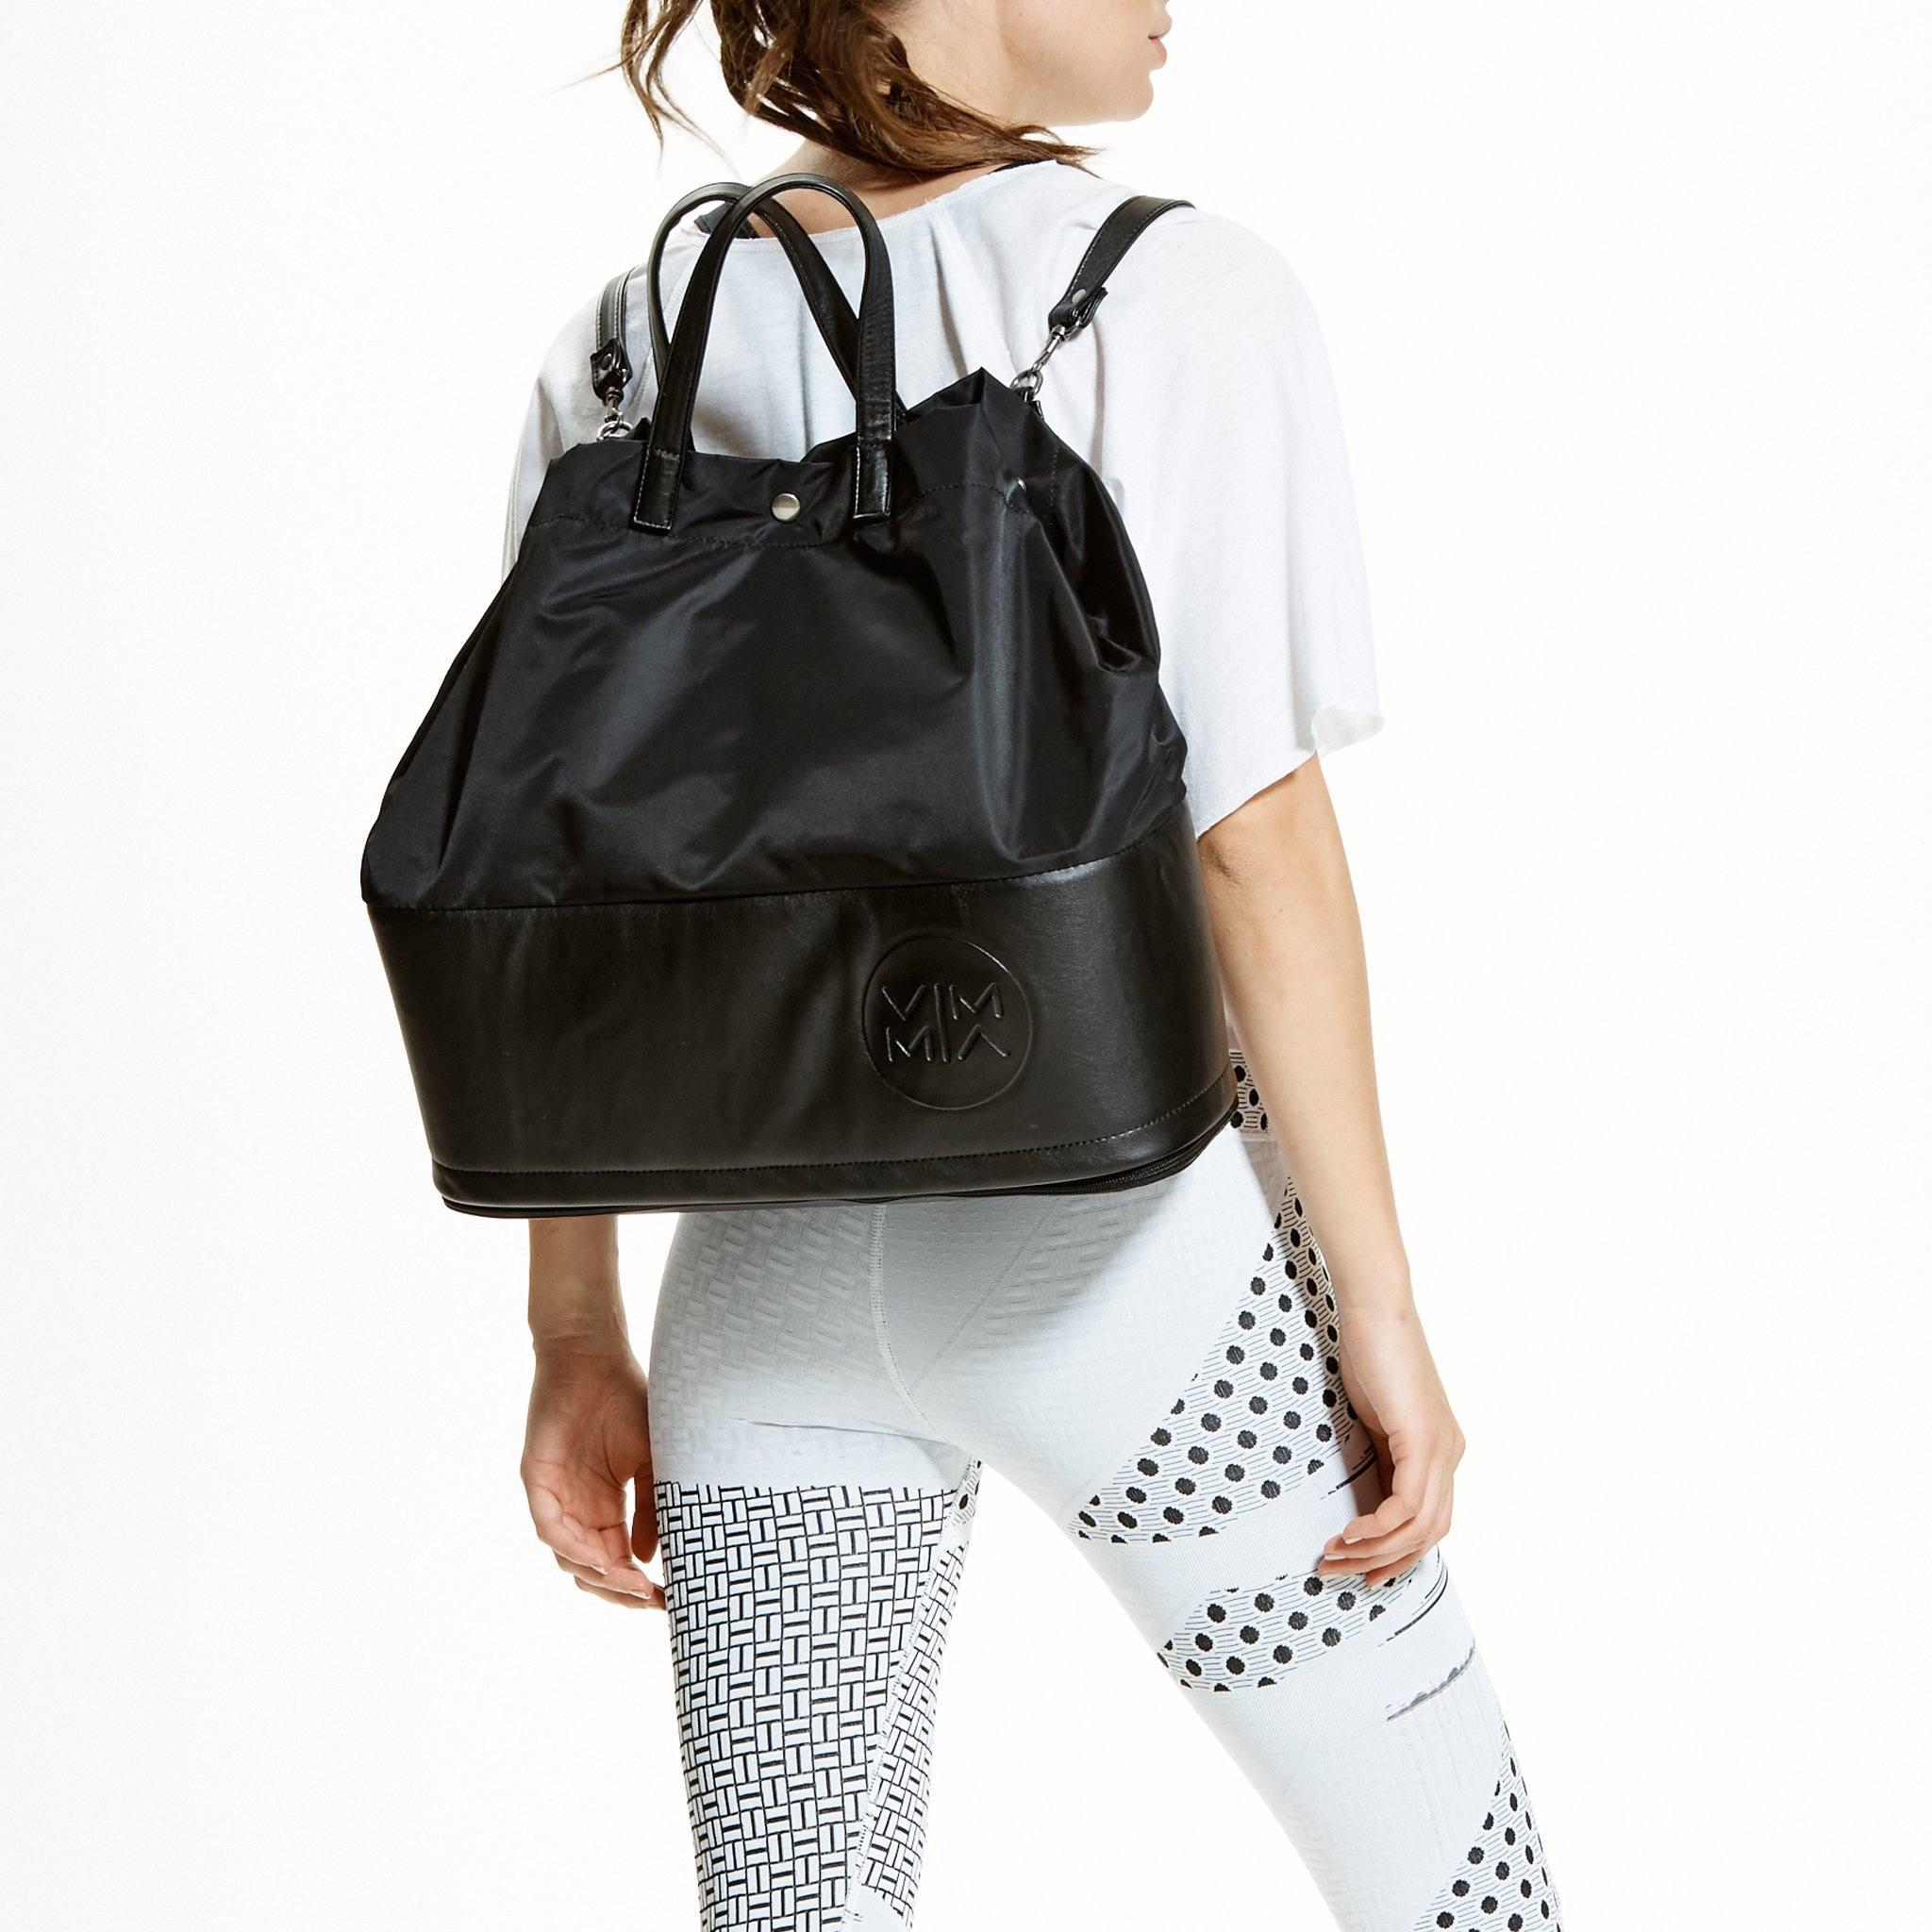 The City Tote All-In-One Bag